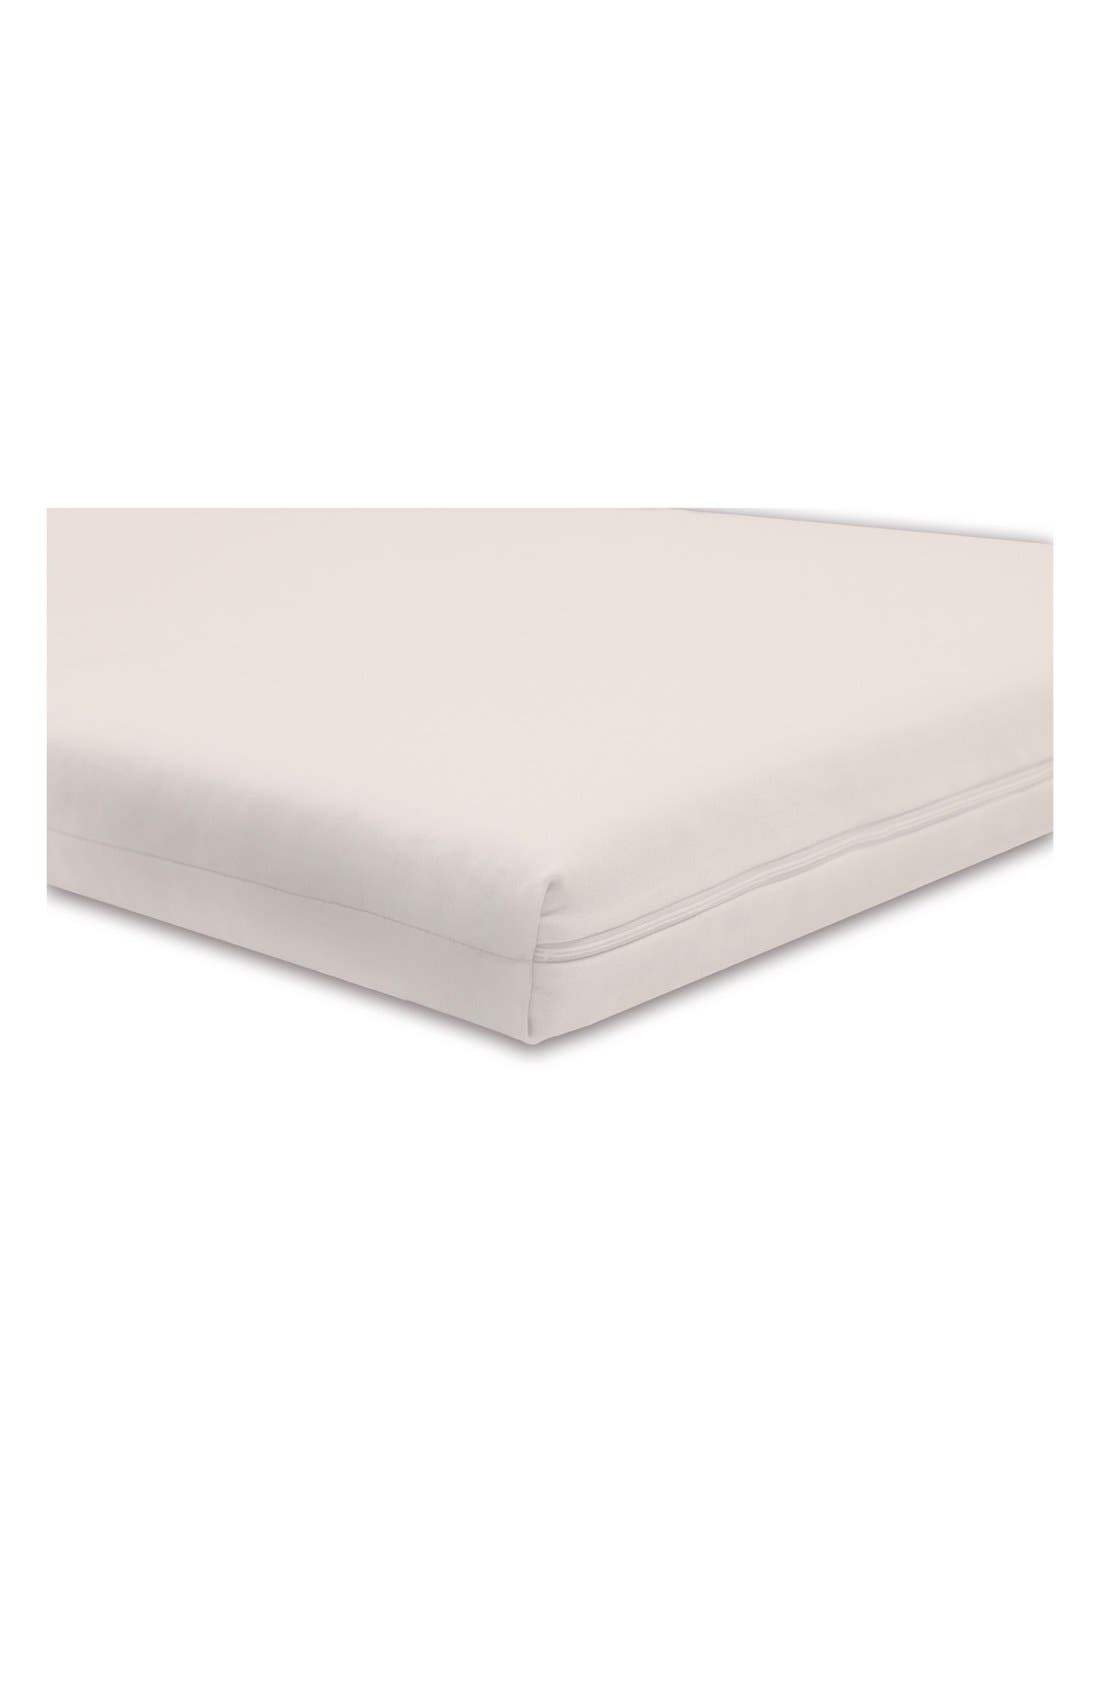 'Coco Core' Nontoxic Crib Mattress & DRY Waterproof Cover,                             Alternate thumbnail 4, color,                             100